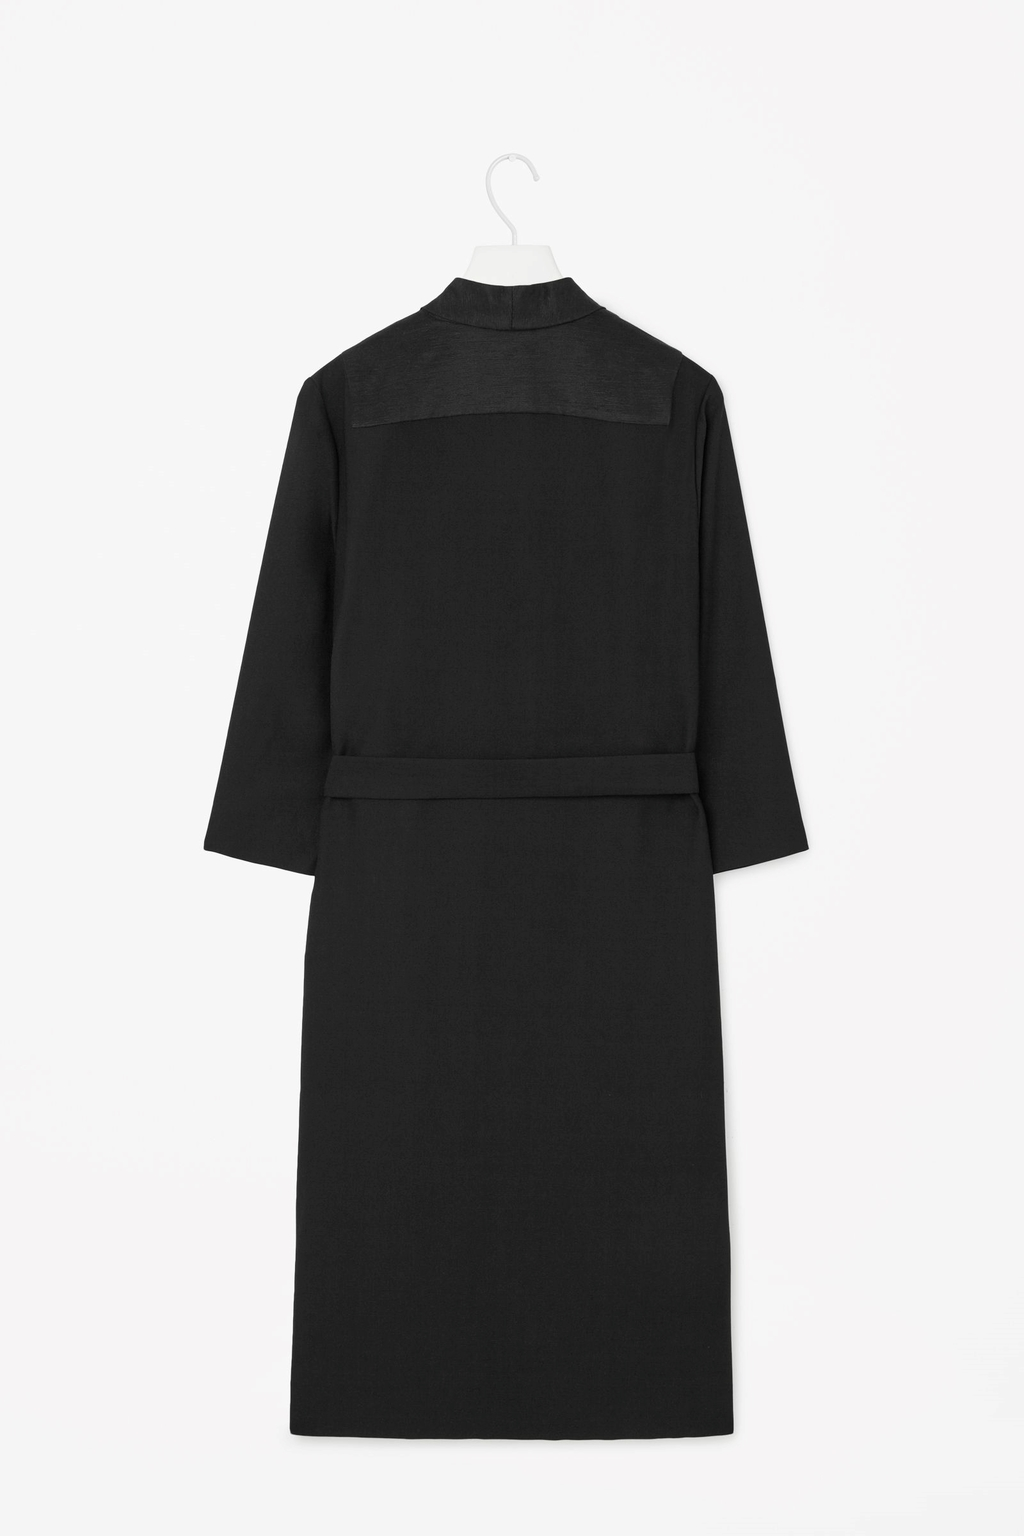 Long Blazer Dress - style: shift; pattern: plain; neckline: high neck; predominant colour: black; occasions: evening, work, creative work; length: just above the knee; fit: straight cut; fibres: polyester/polyamide - 100%; sleeve length: 3/4 length; sleeve style: standard; pattern type: fabric; texture group: woven light midweight; season: s/s 2015